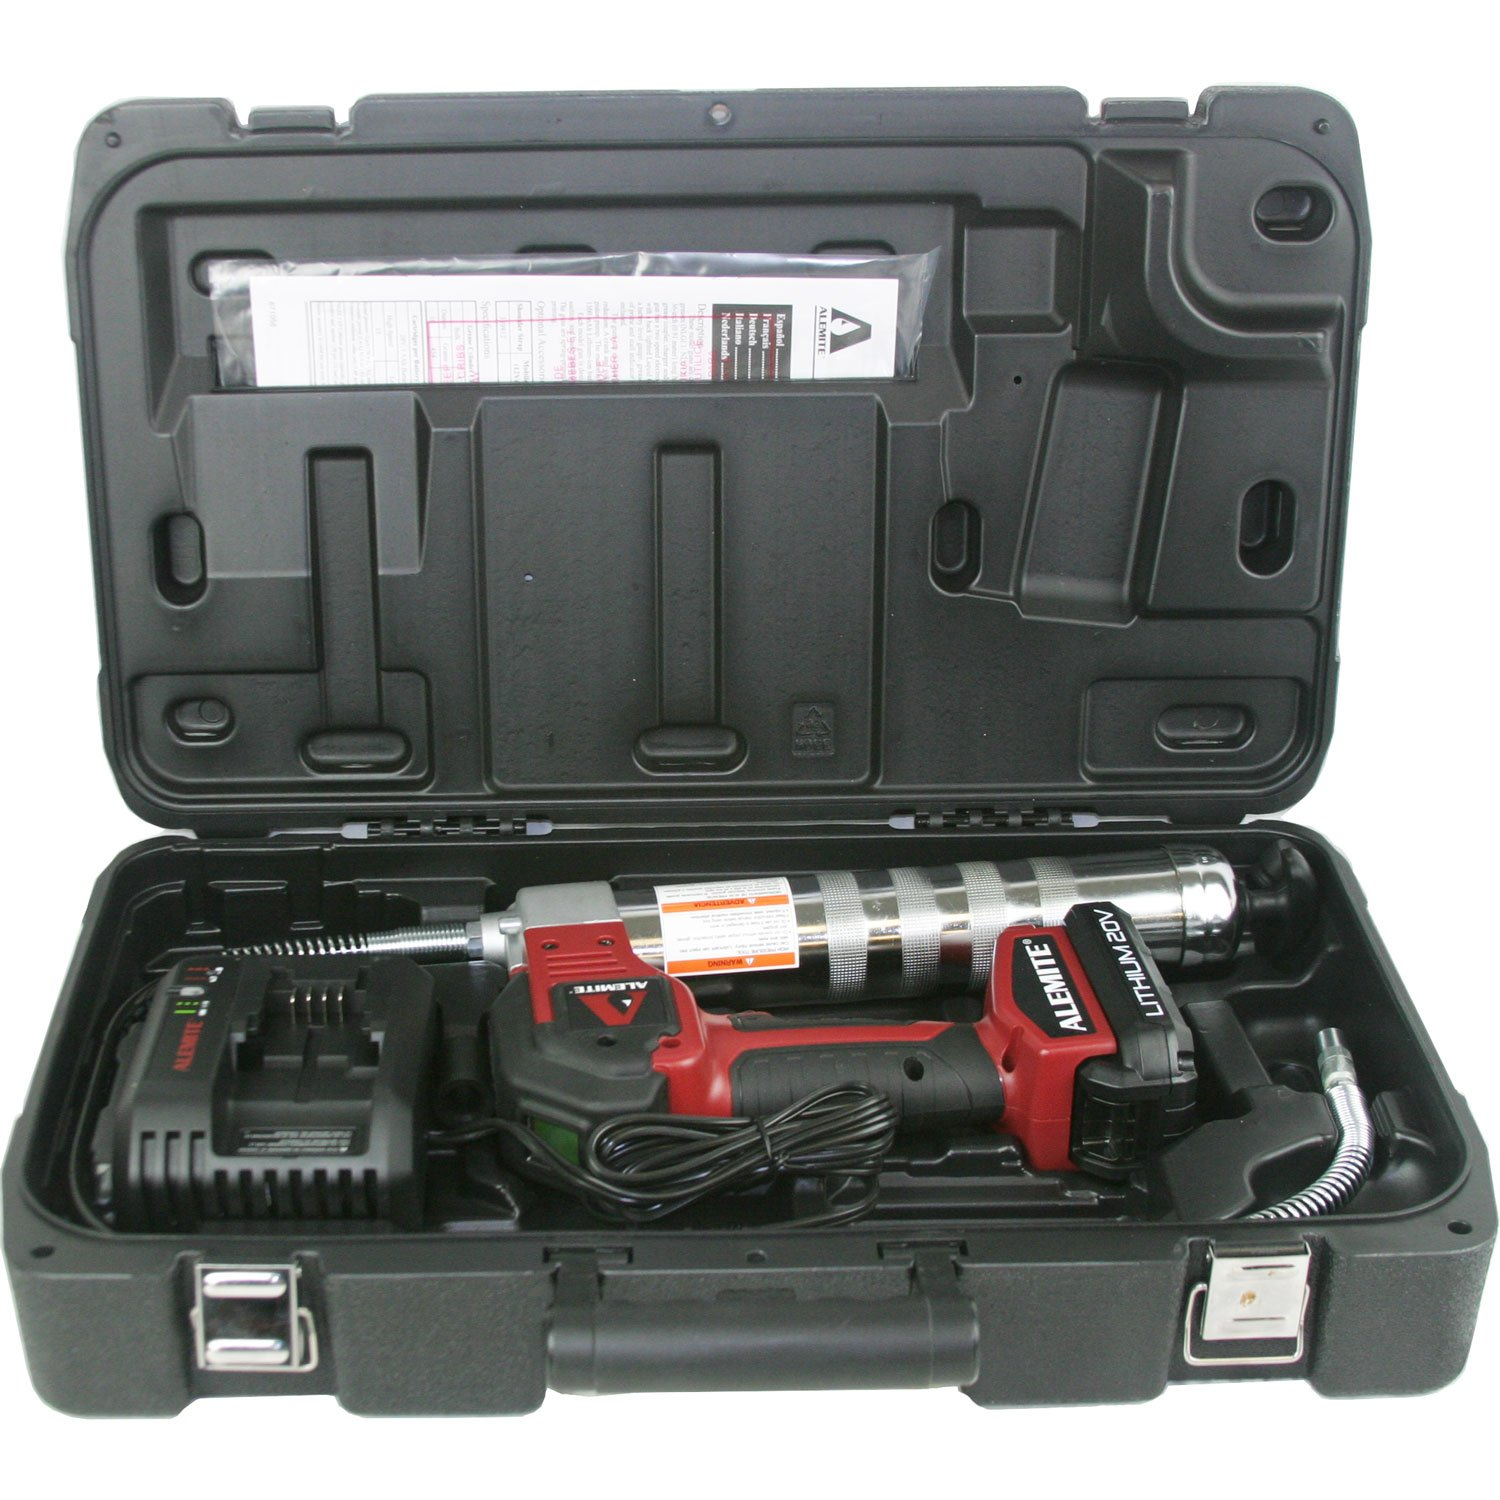 Alemite 596-A 20-Volt Lithium-Ion Cordless Grease Gun Kit with LCD Display by Alemite